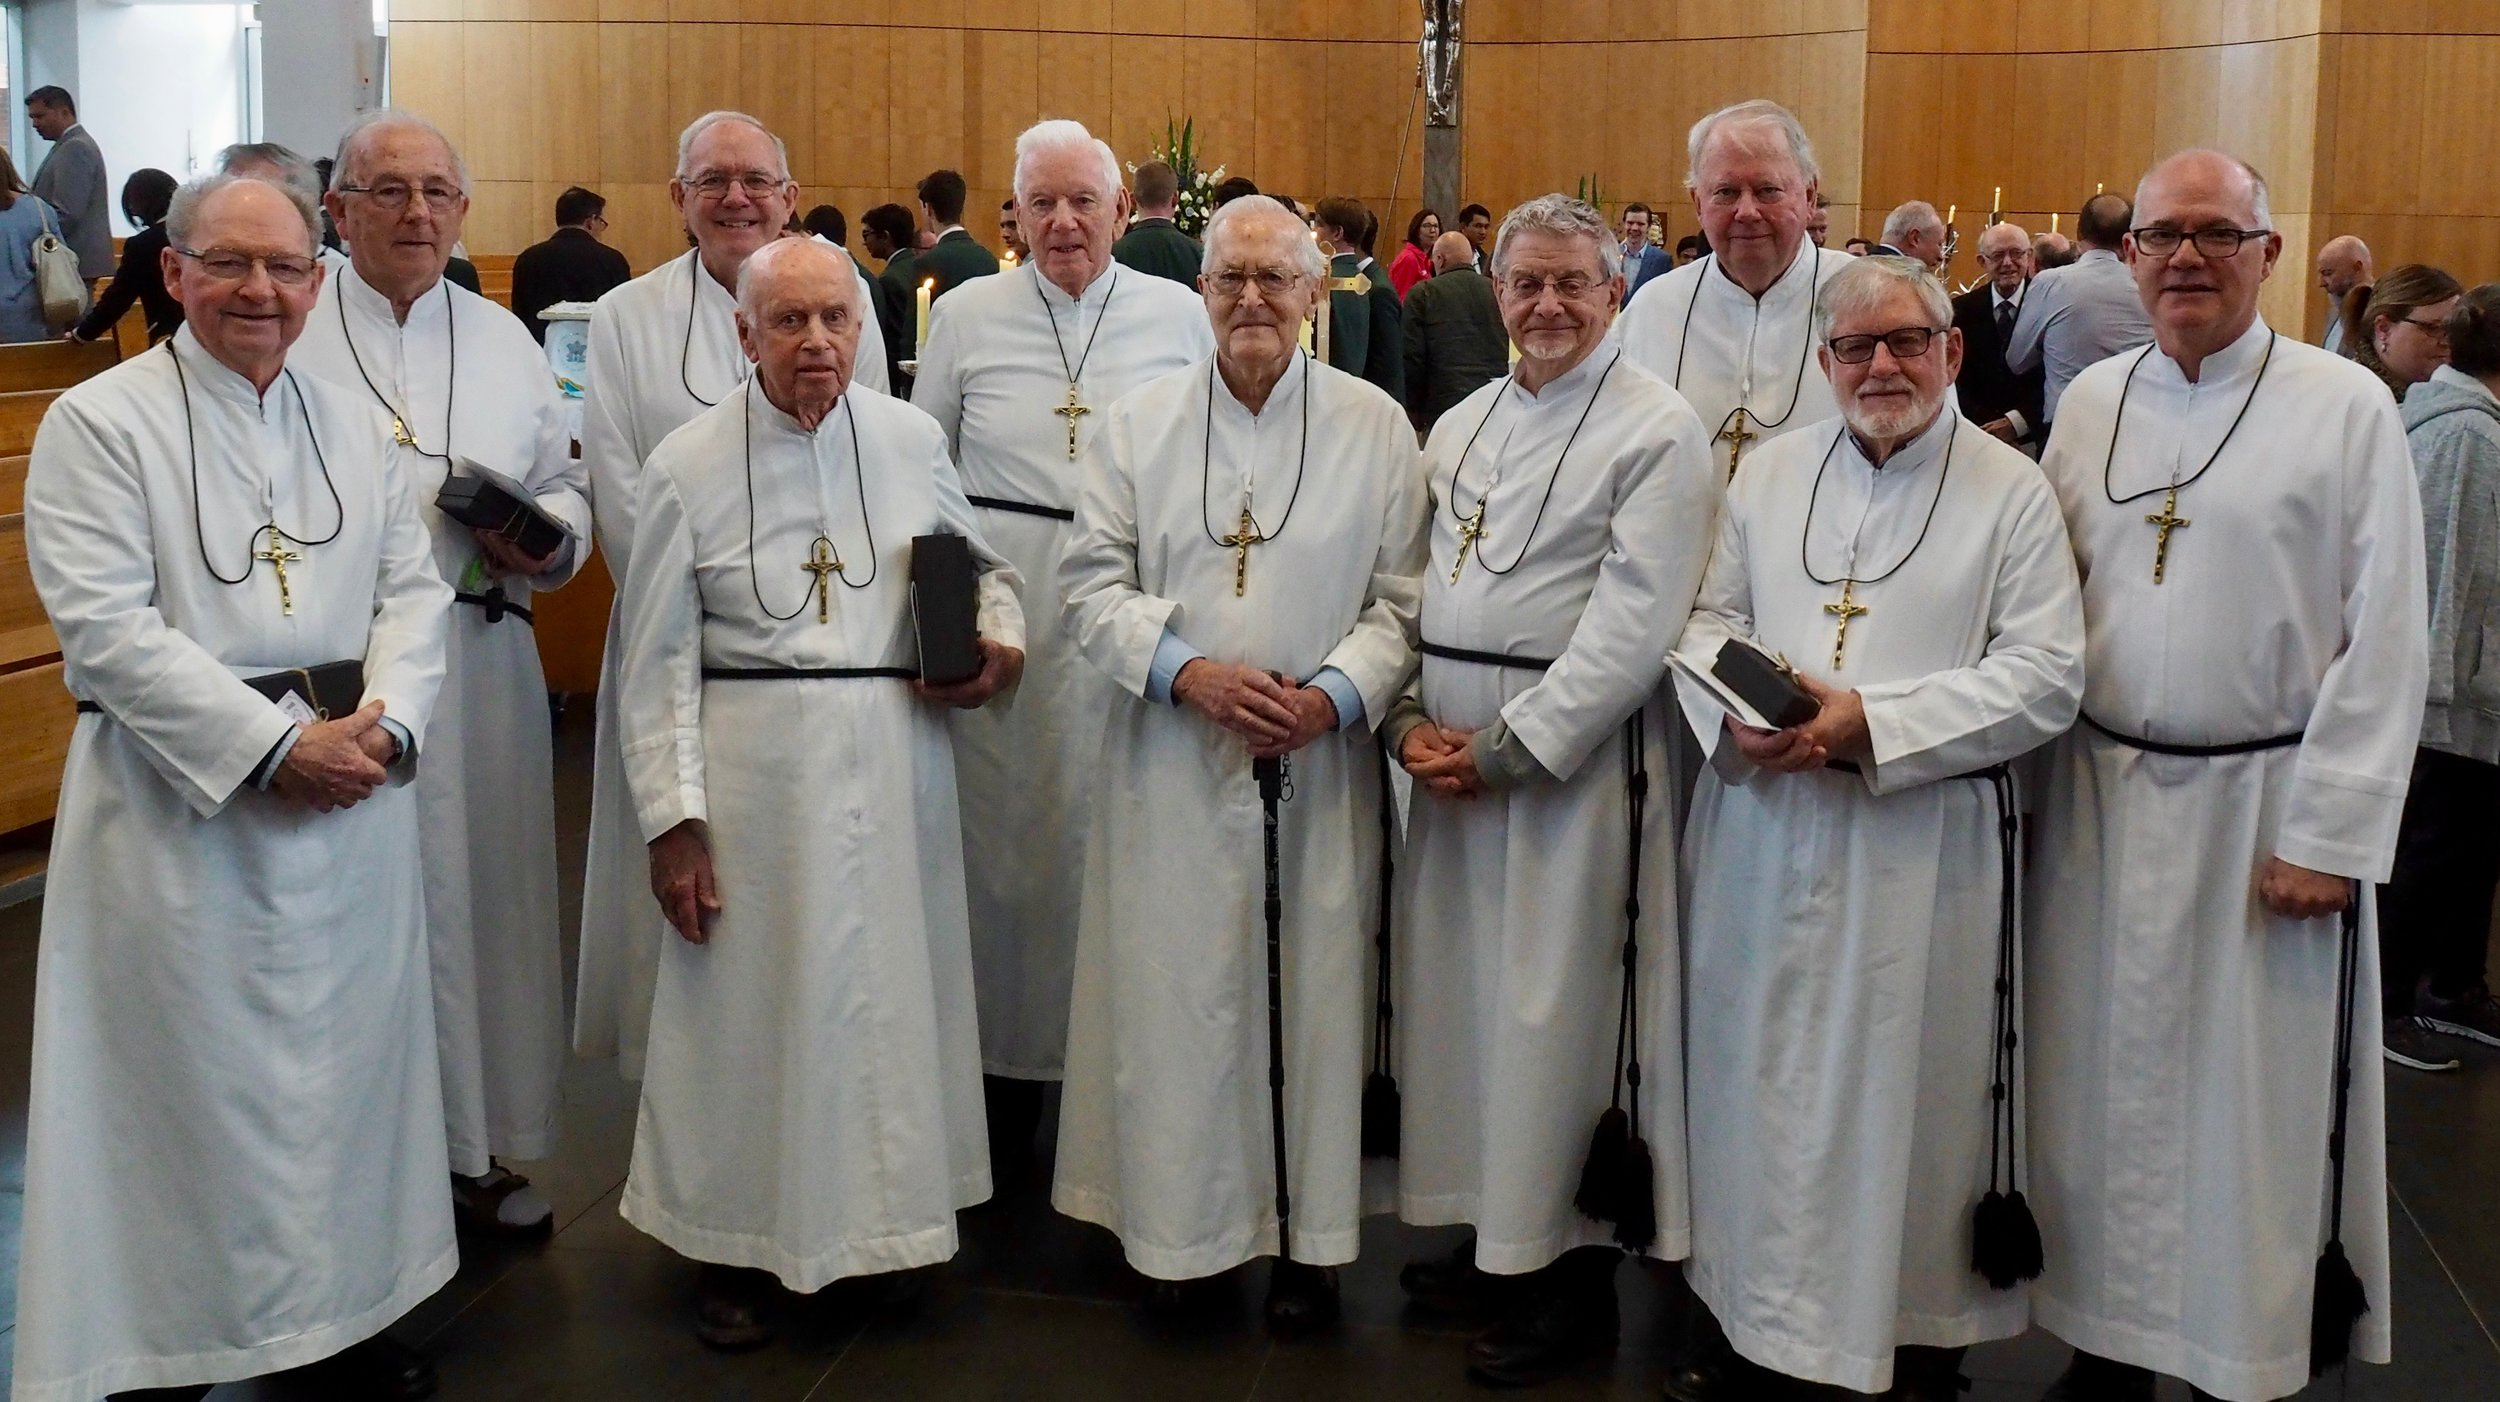 Bicentenary Mass Sydney 12 Aug 2017 Photos by Paul Harris 00117.jpg